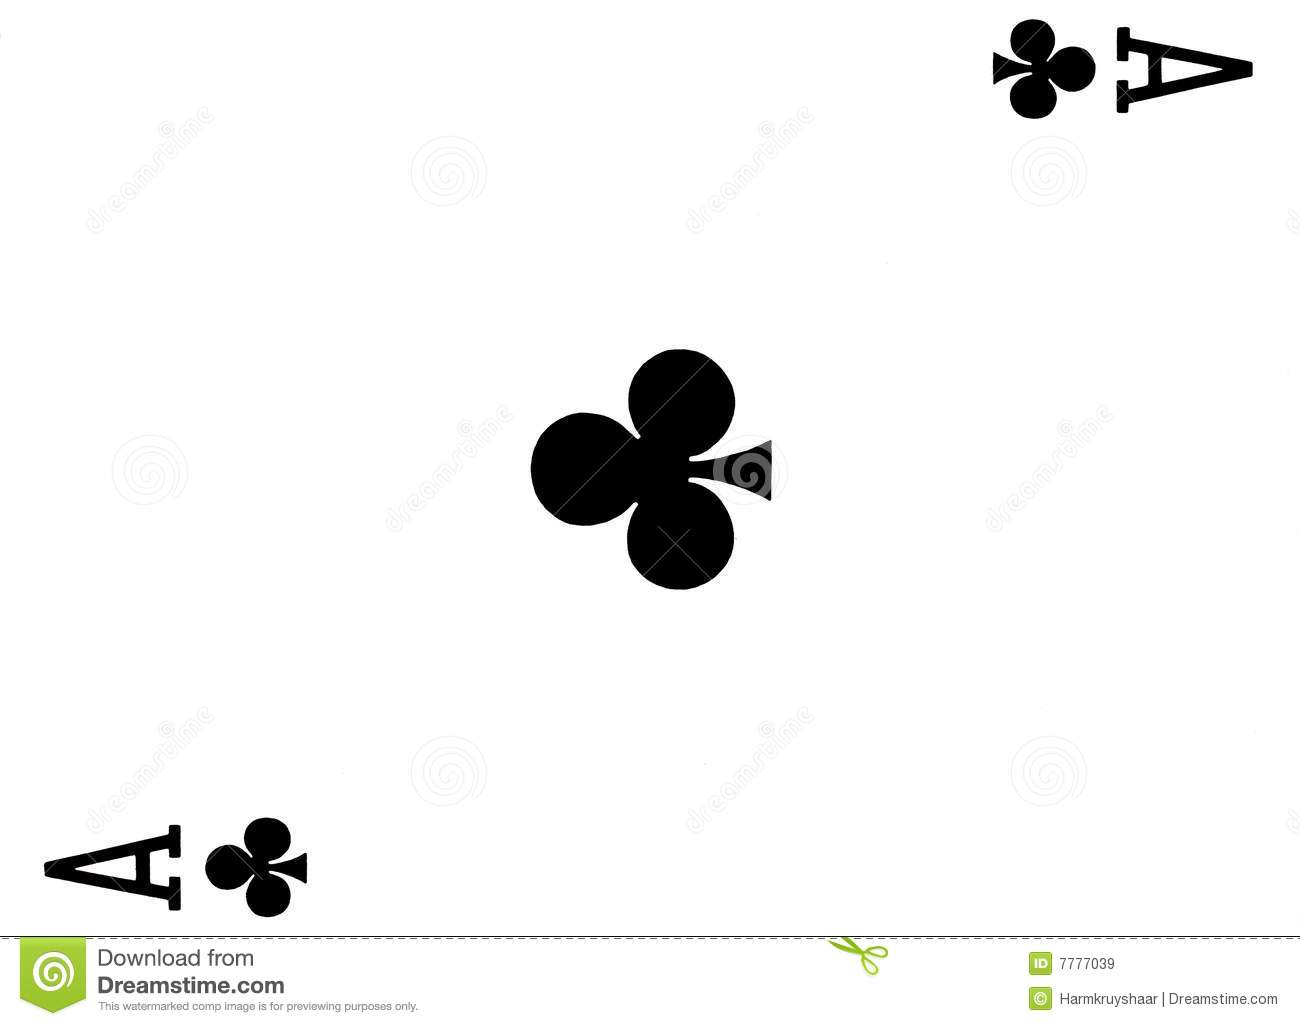 Ace of clubs clipart picture free library Ace Of Clubs Playing Card Clipart - Clipart Kid picture free library